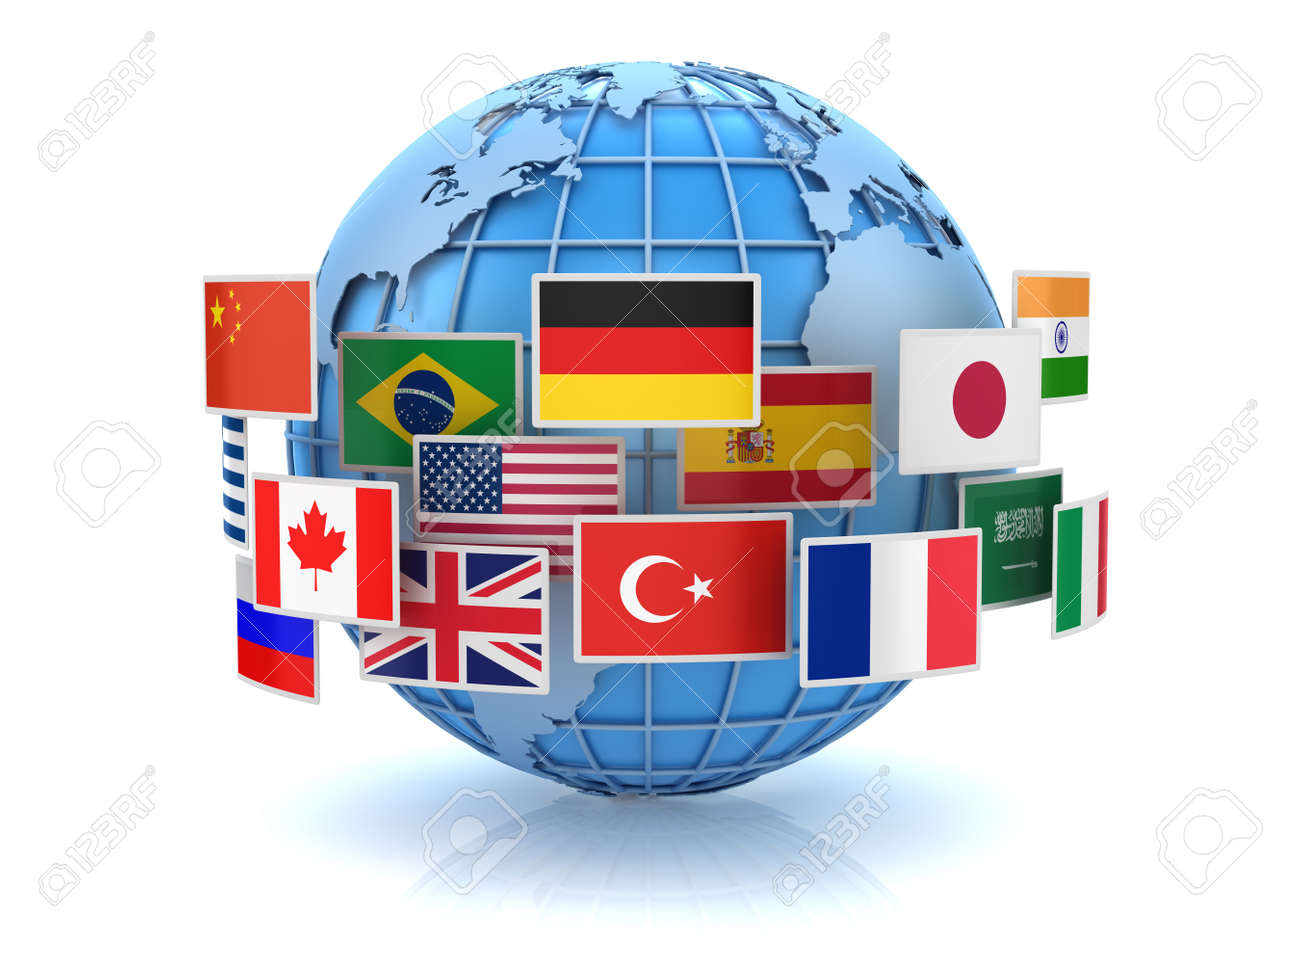 World map and country flags this is a 3d computer generated stock photo world map and country flags this is a 3d computer generated image isolated on white gumiabroncs Choice Image